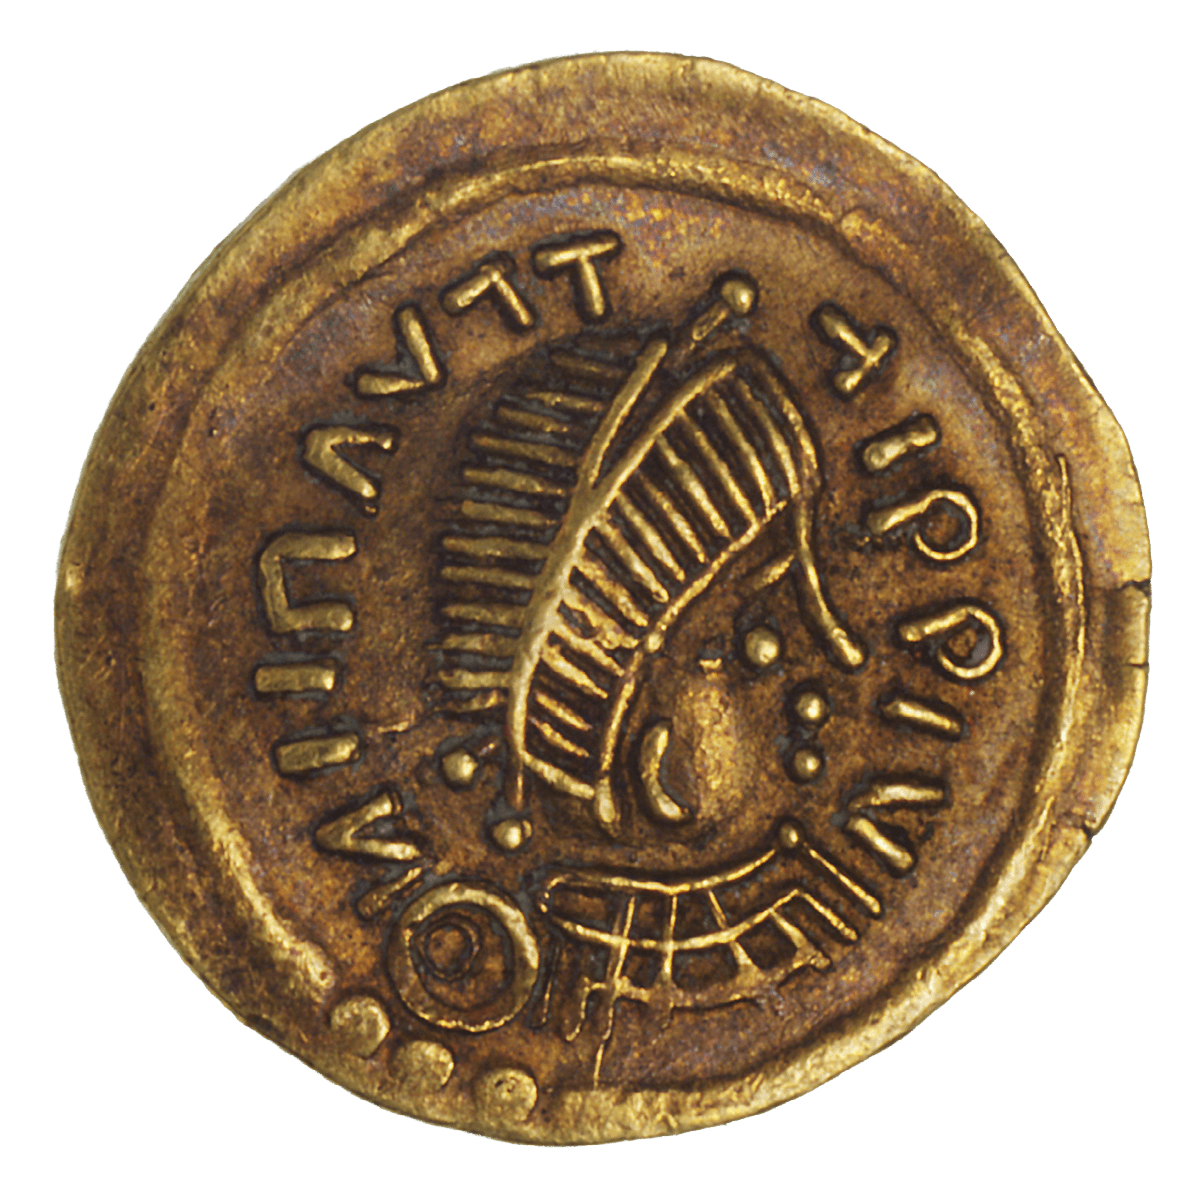 Kingdom of the Lombards, Perctarit, Tremissis (obverse)